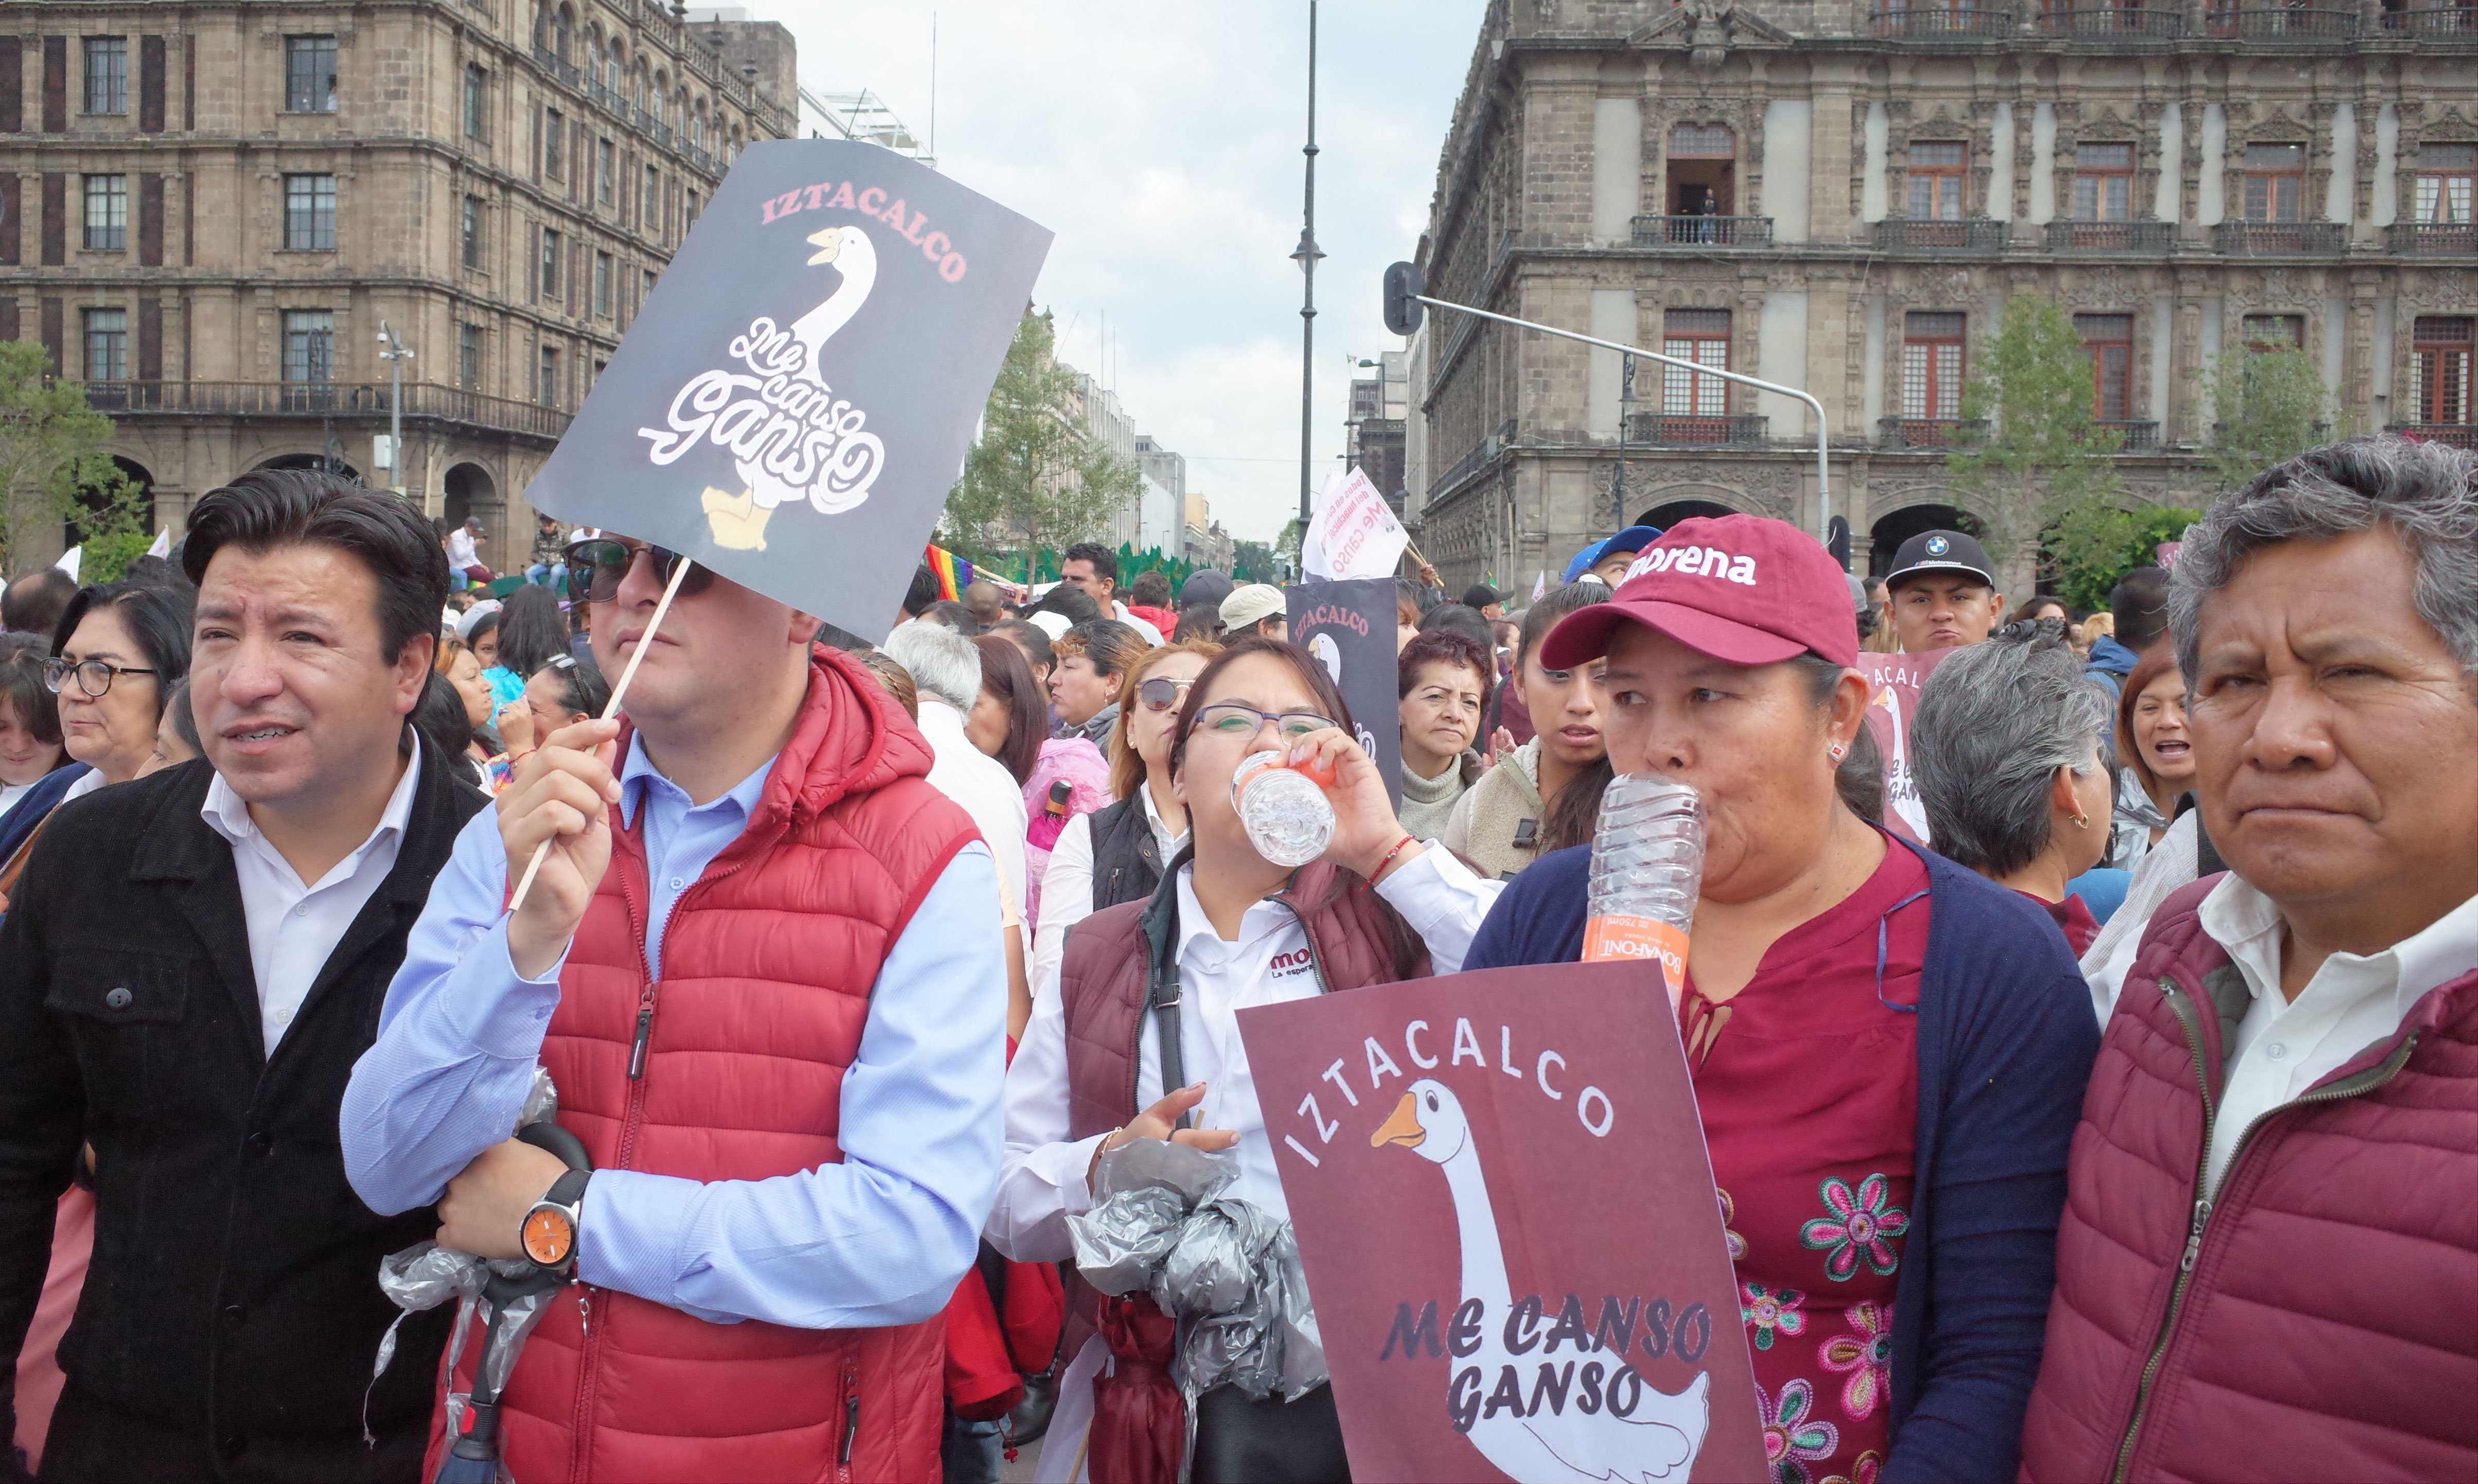 Their placards read 'I'm tired goose,' a favorite phrase of AMLO.